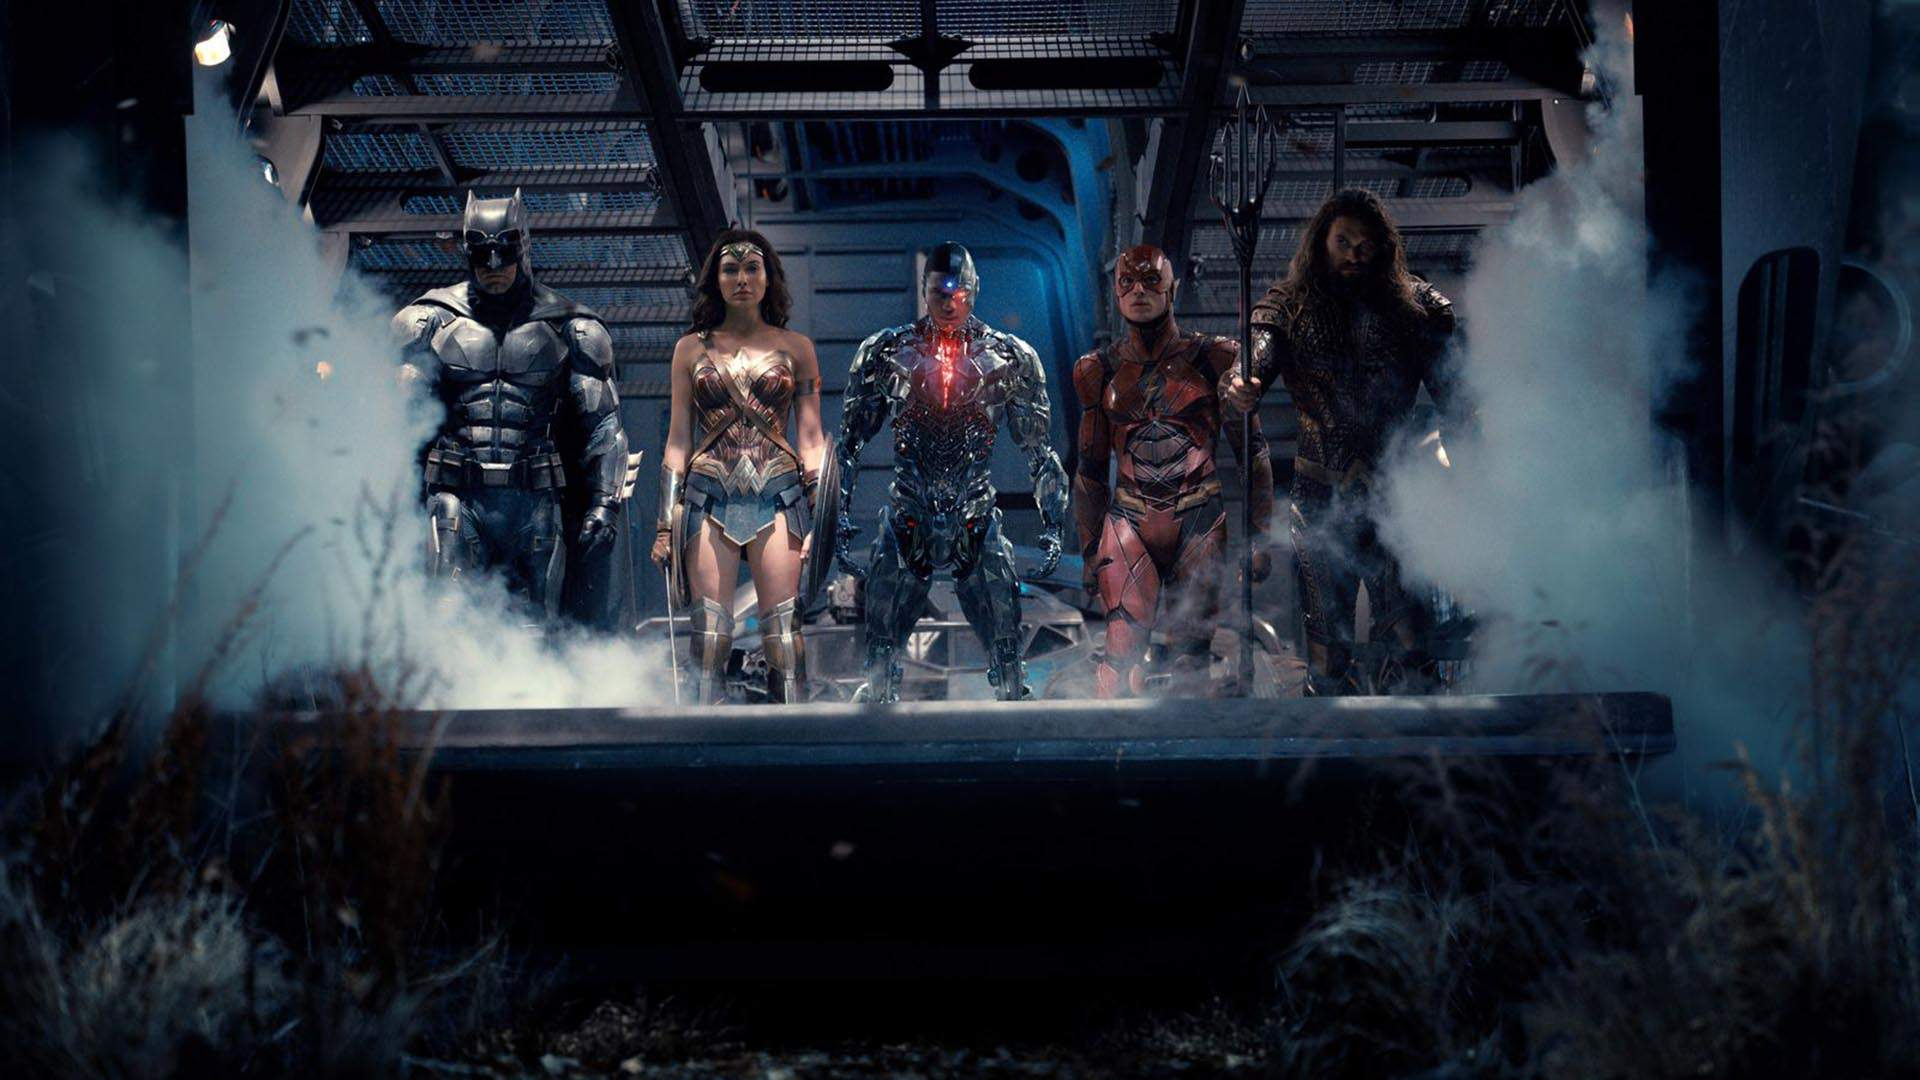 Australian Viewers Will Able to Stream the New Extended Cut of 'Justice League' in March